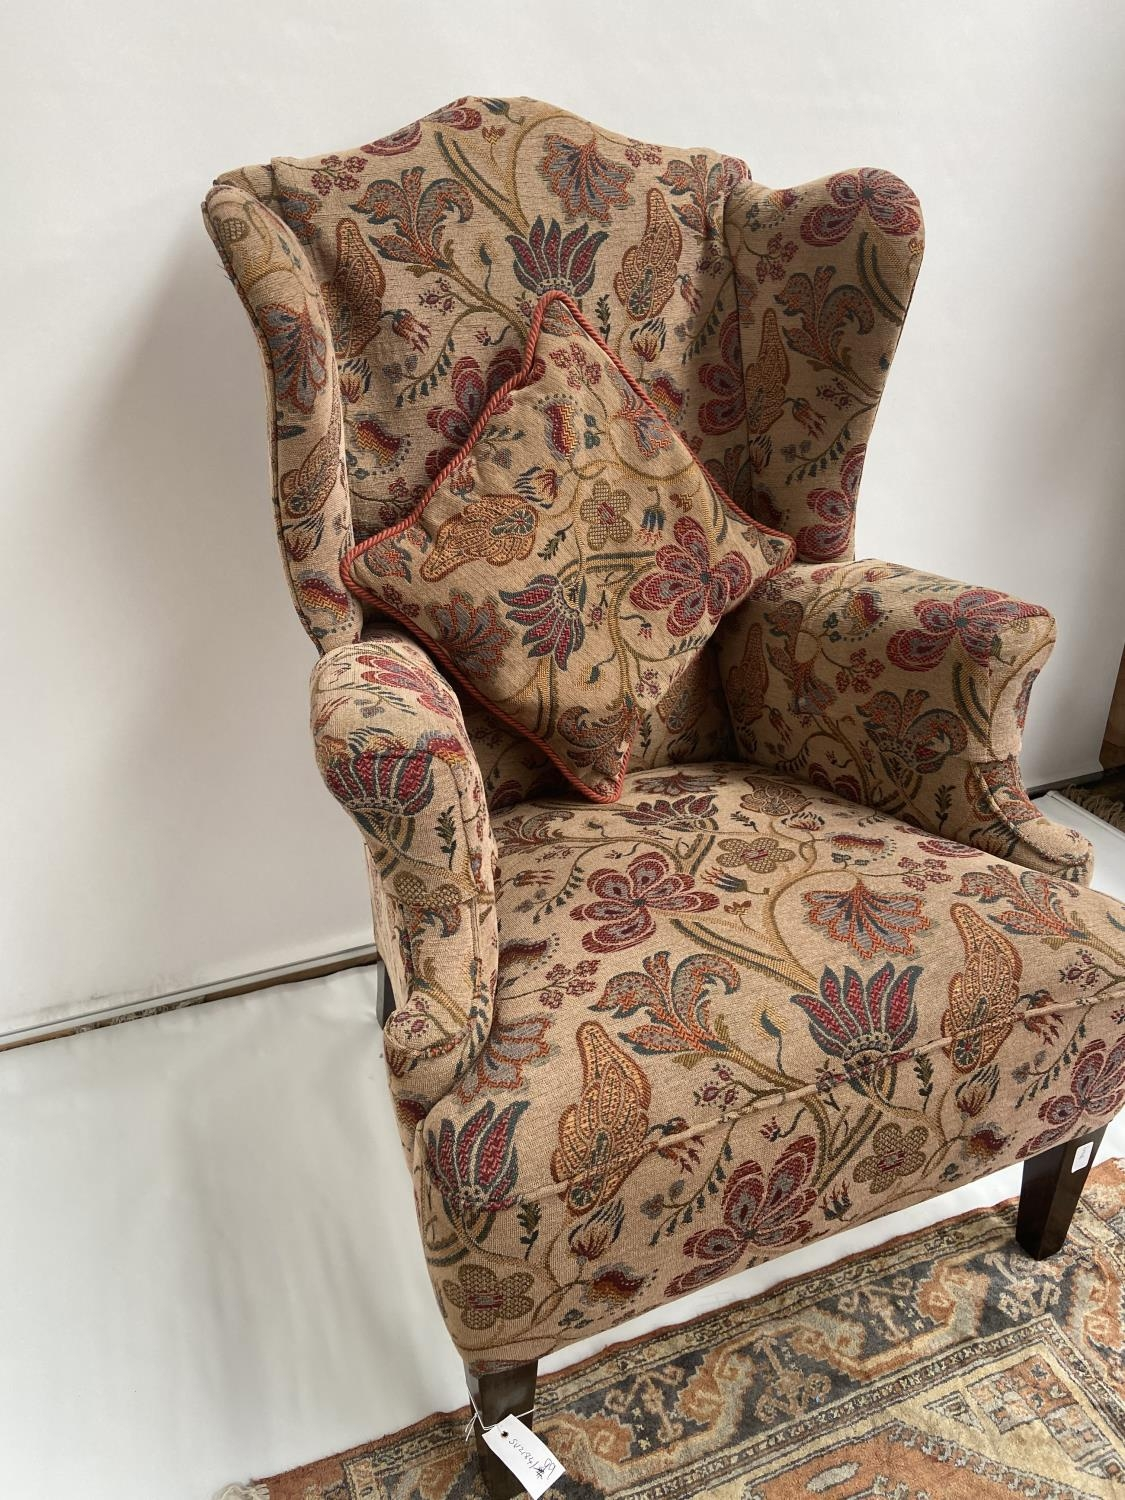 Antique gull wing arm chair. [back 114cm] [seat area 50cm] - Image 2 of 5